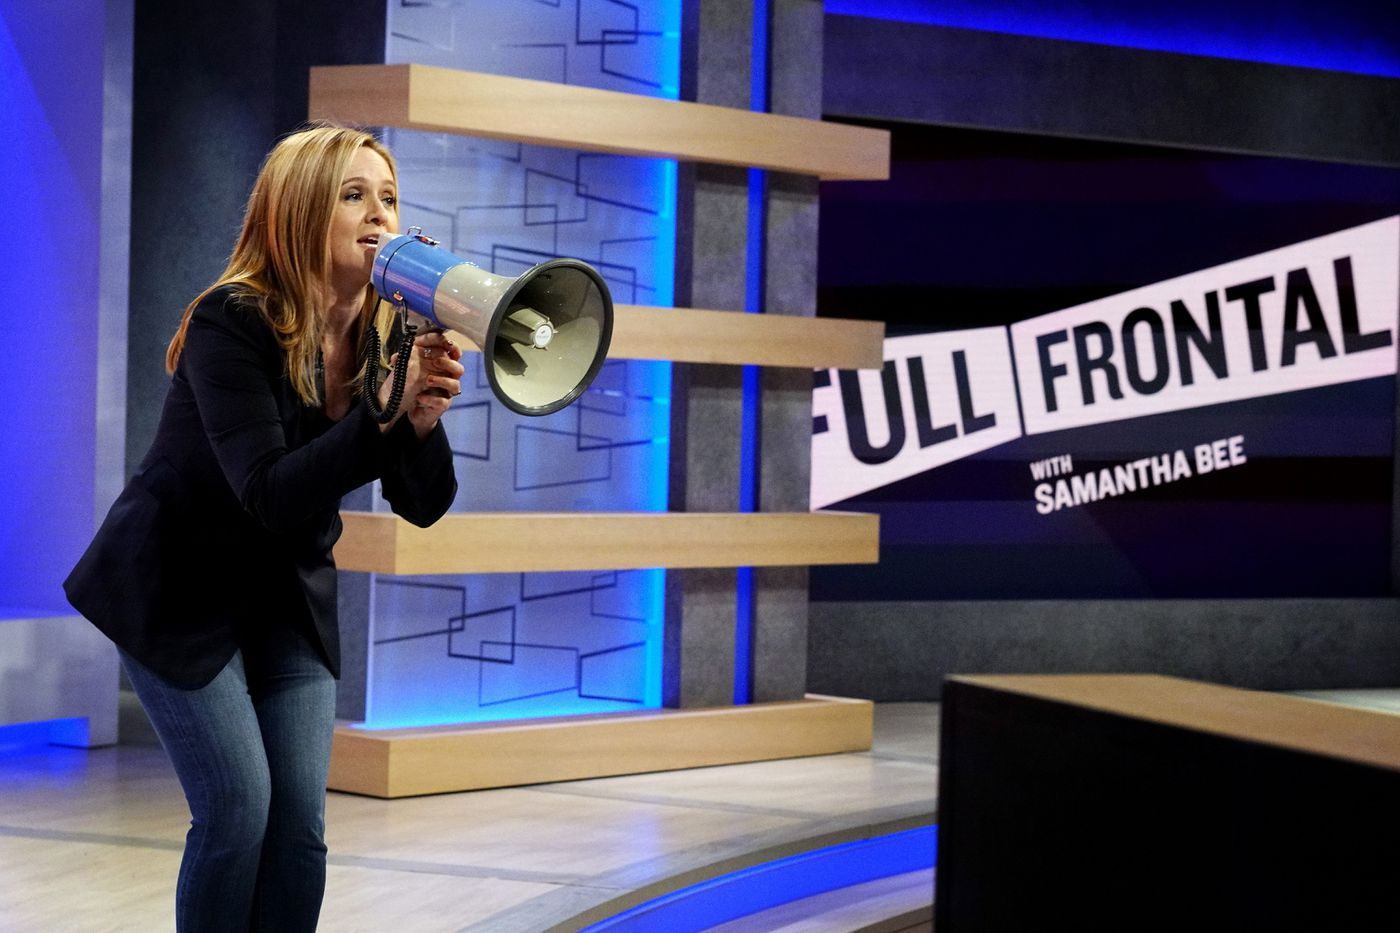 Samantha Bee came to Philly for a 'Full Frontal' interview with District Attorney Larry Krasner